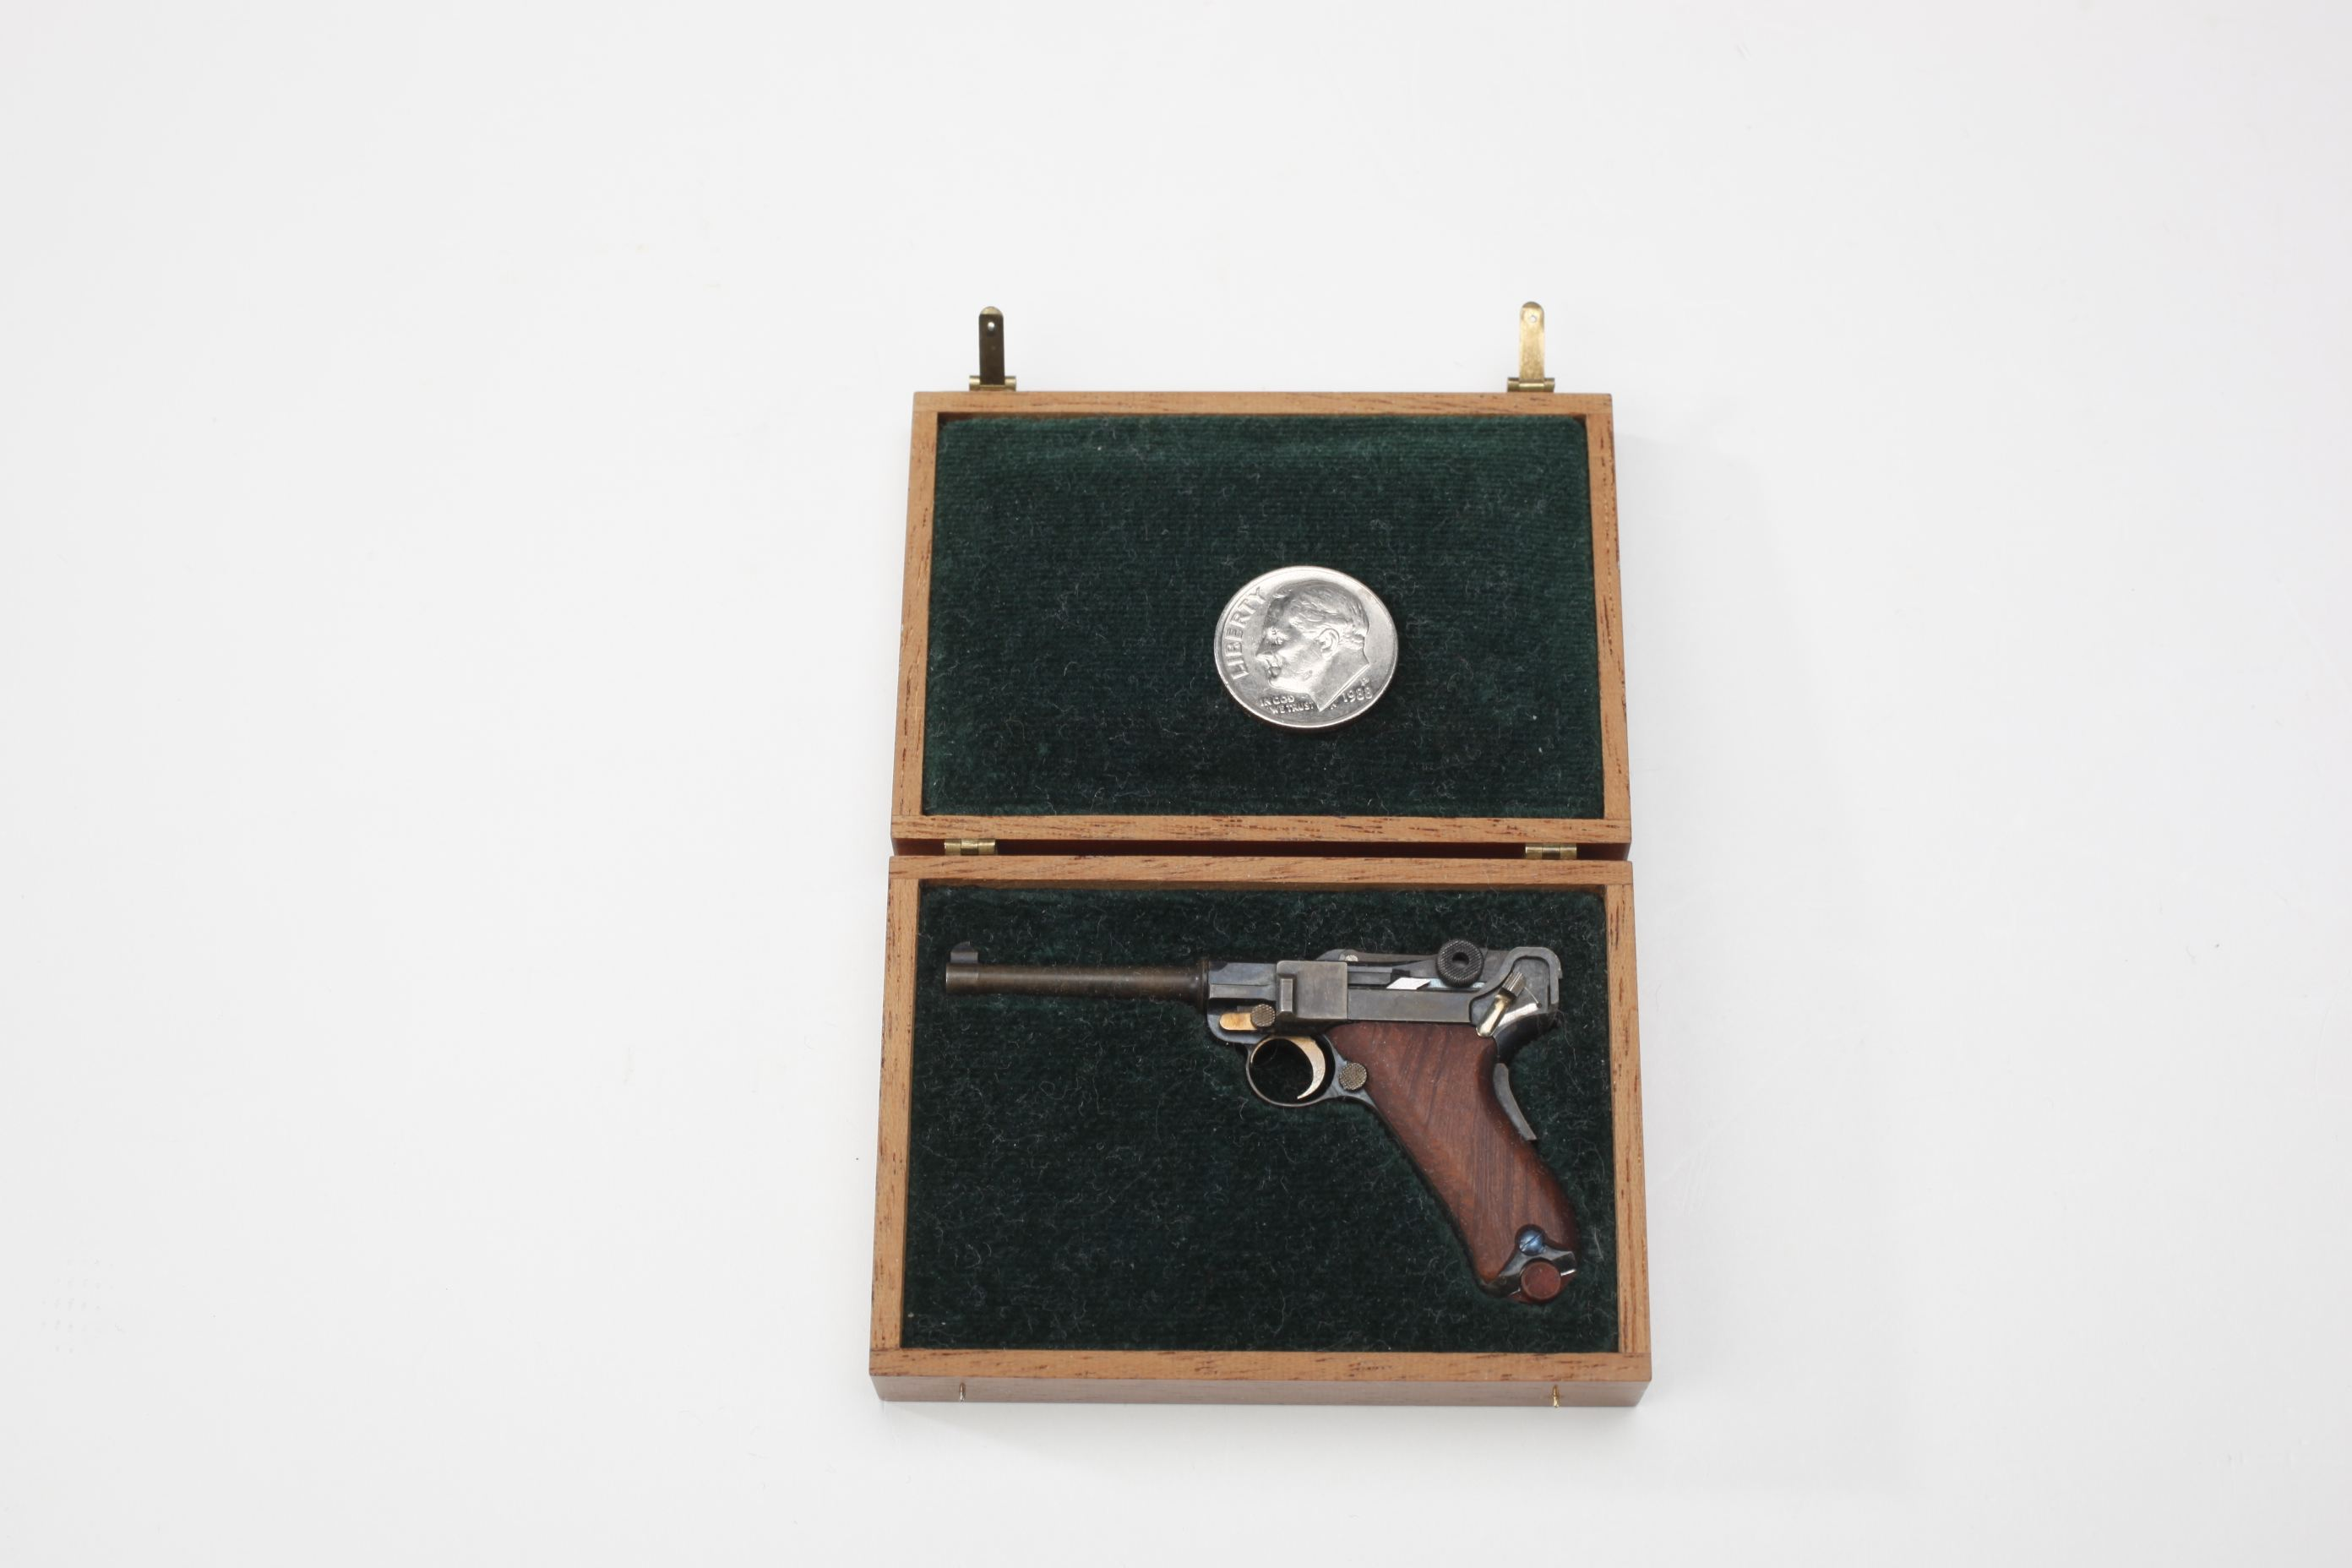 Miniature Cased Luger Semi-Automatic Pistol